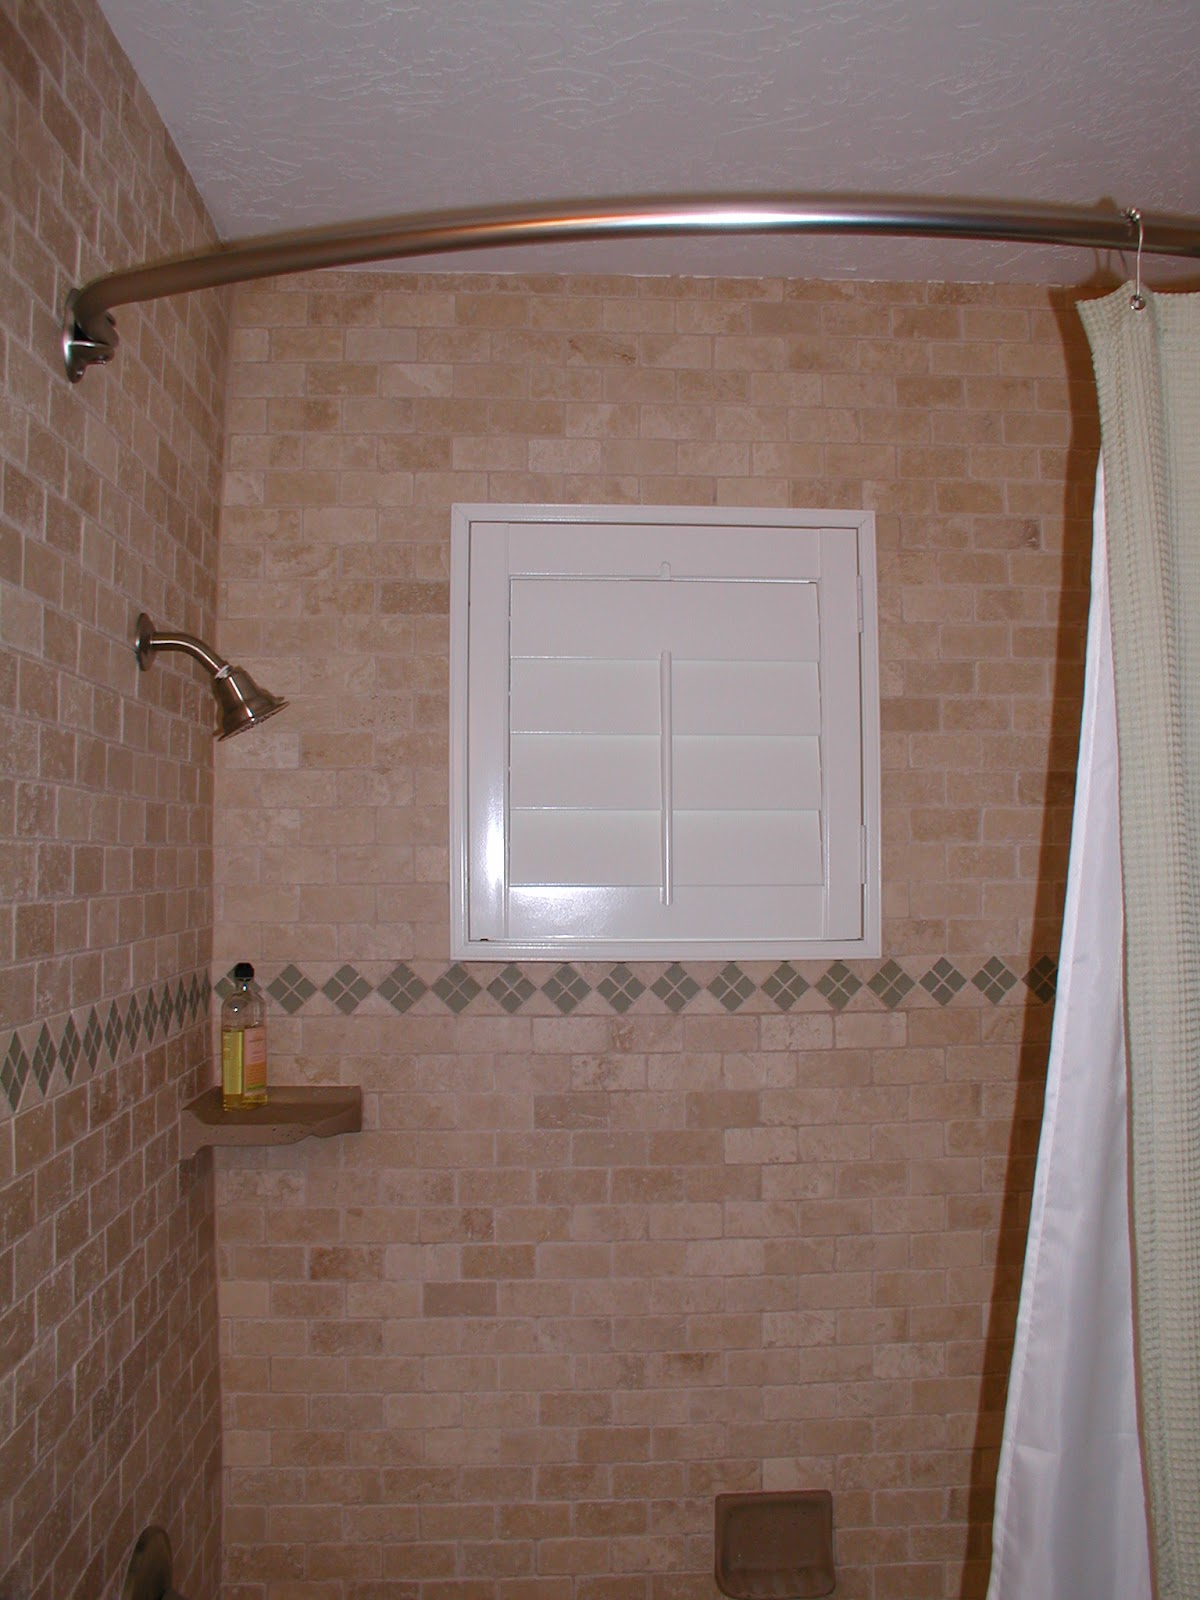 shower windows and vinyl shutters give full privacy and water proof